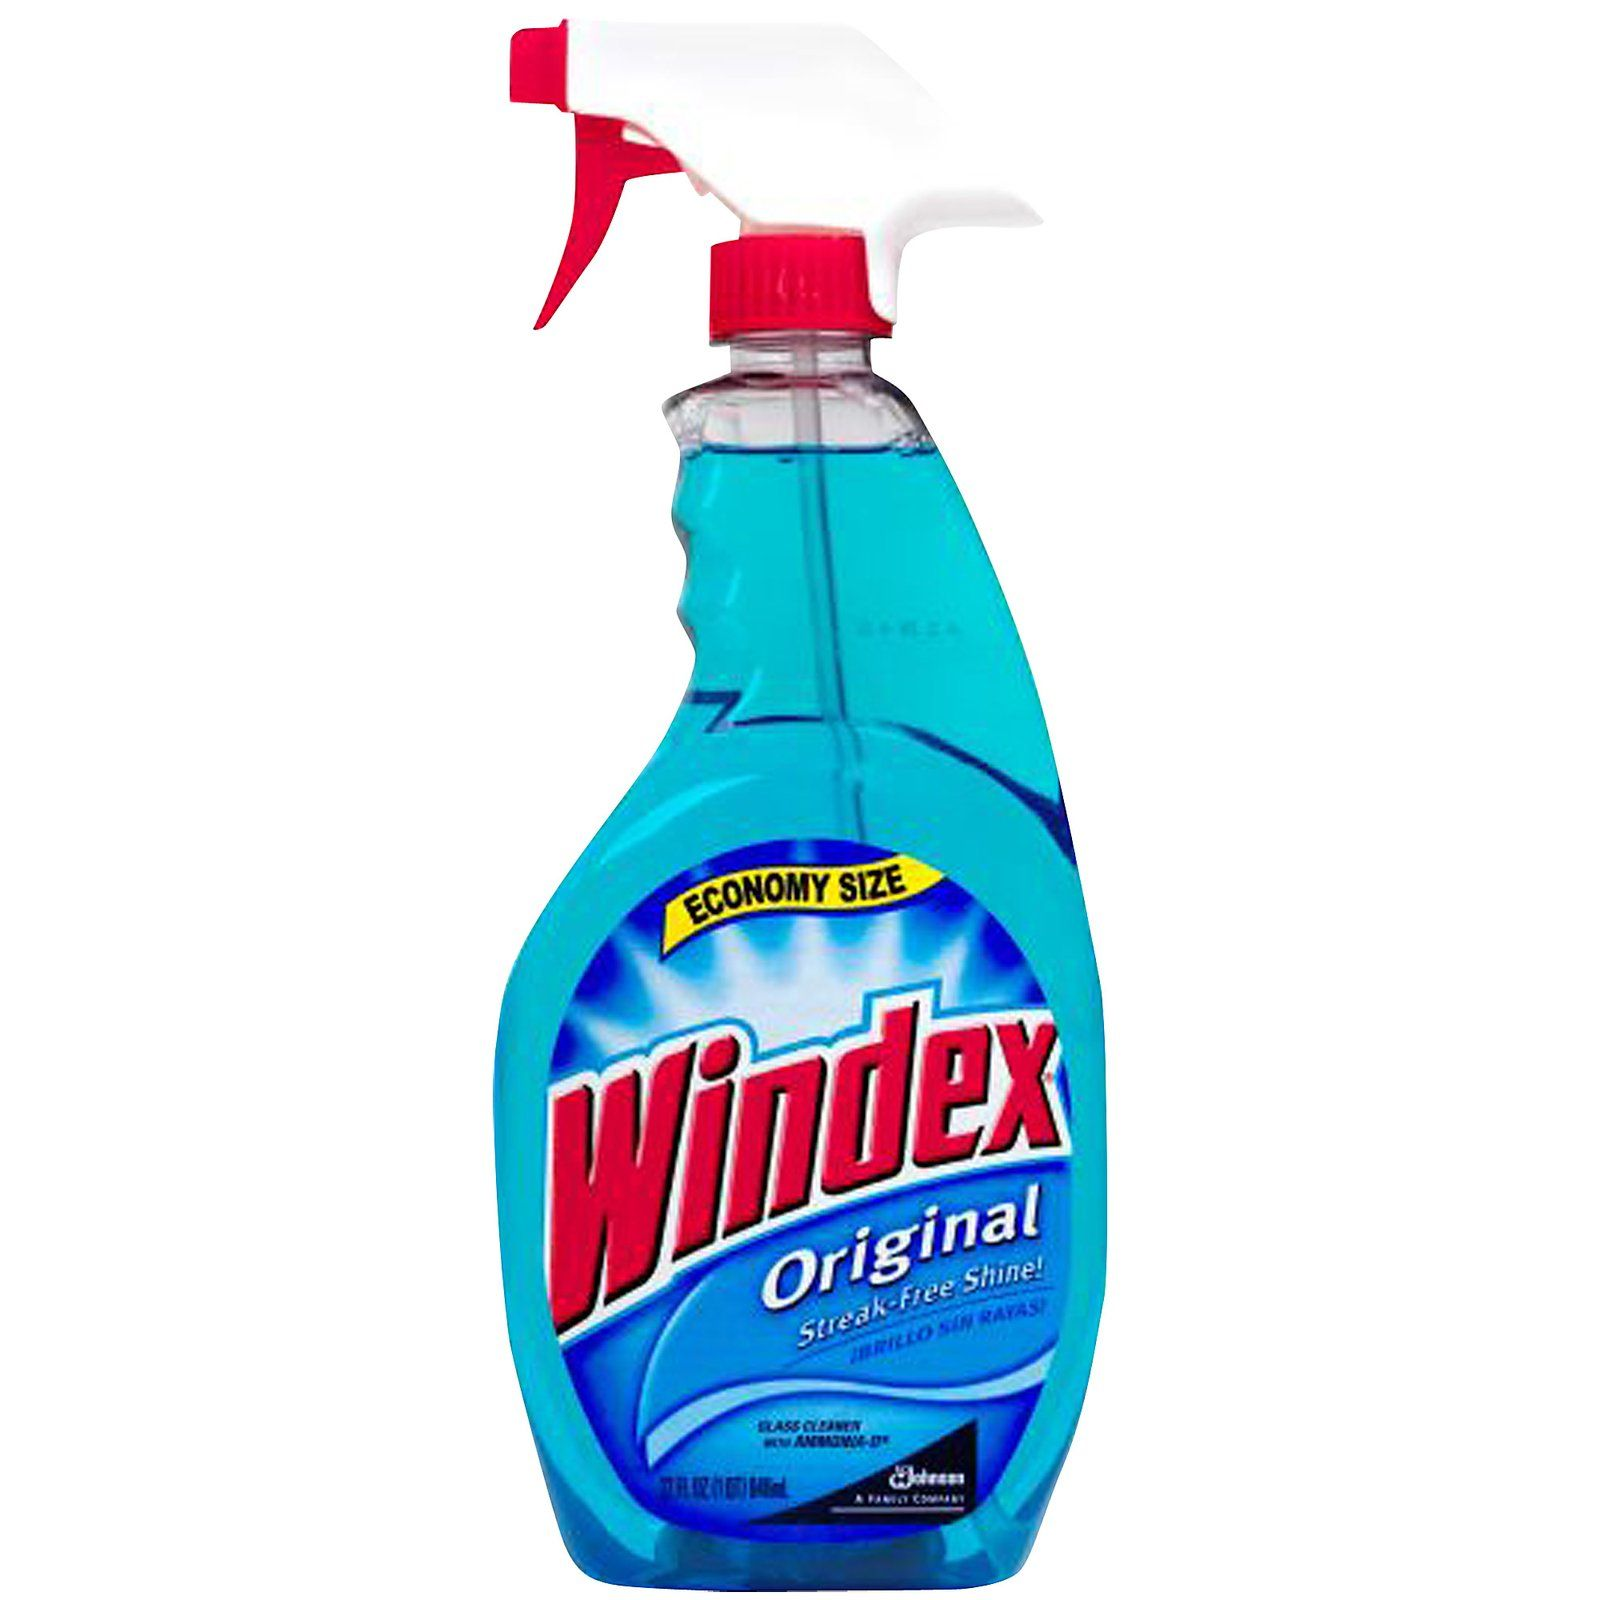 6 Really Cool Uses For Windex High Value 0 50 1 Windex